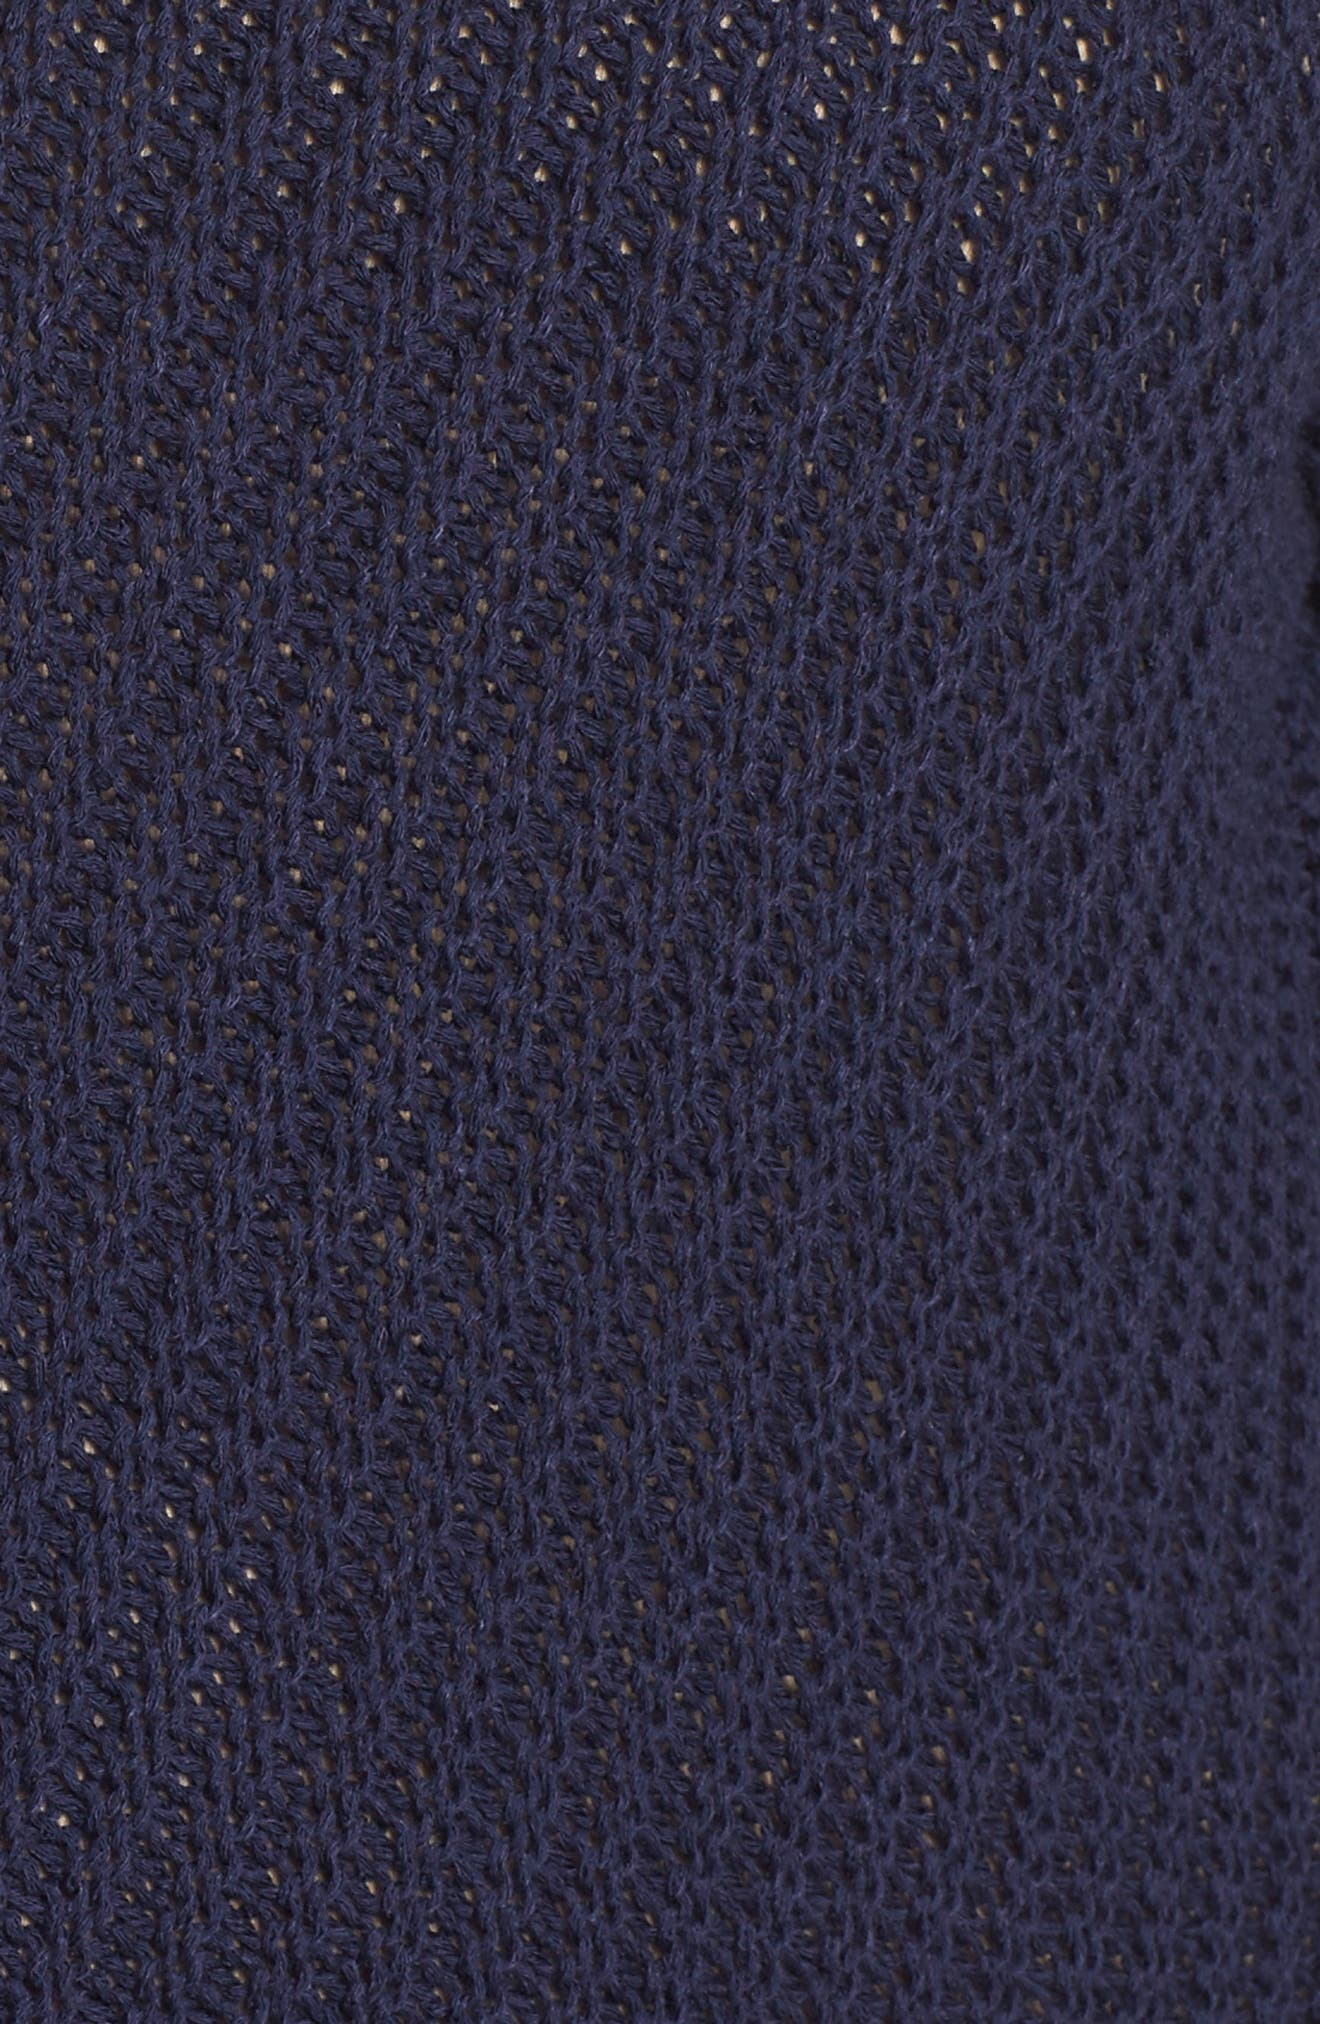 Cuffed Bell Sleeve Sweater,                             Alternate thumbnail 5, color,                             Navy Peacoat